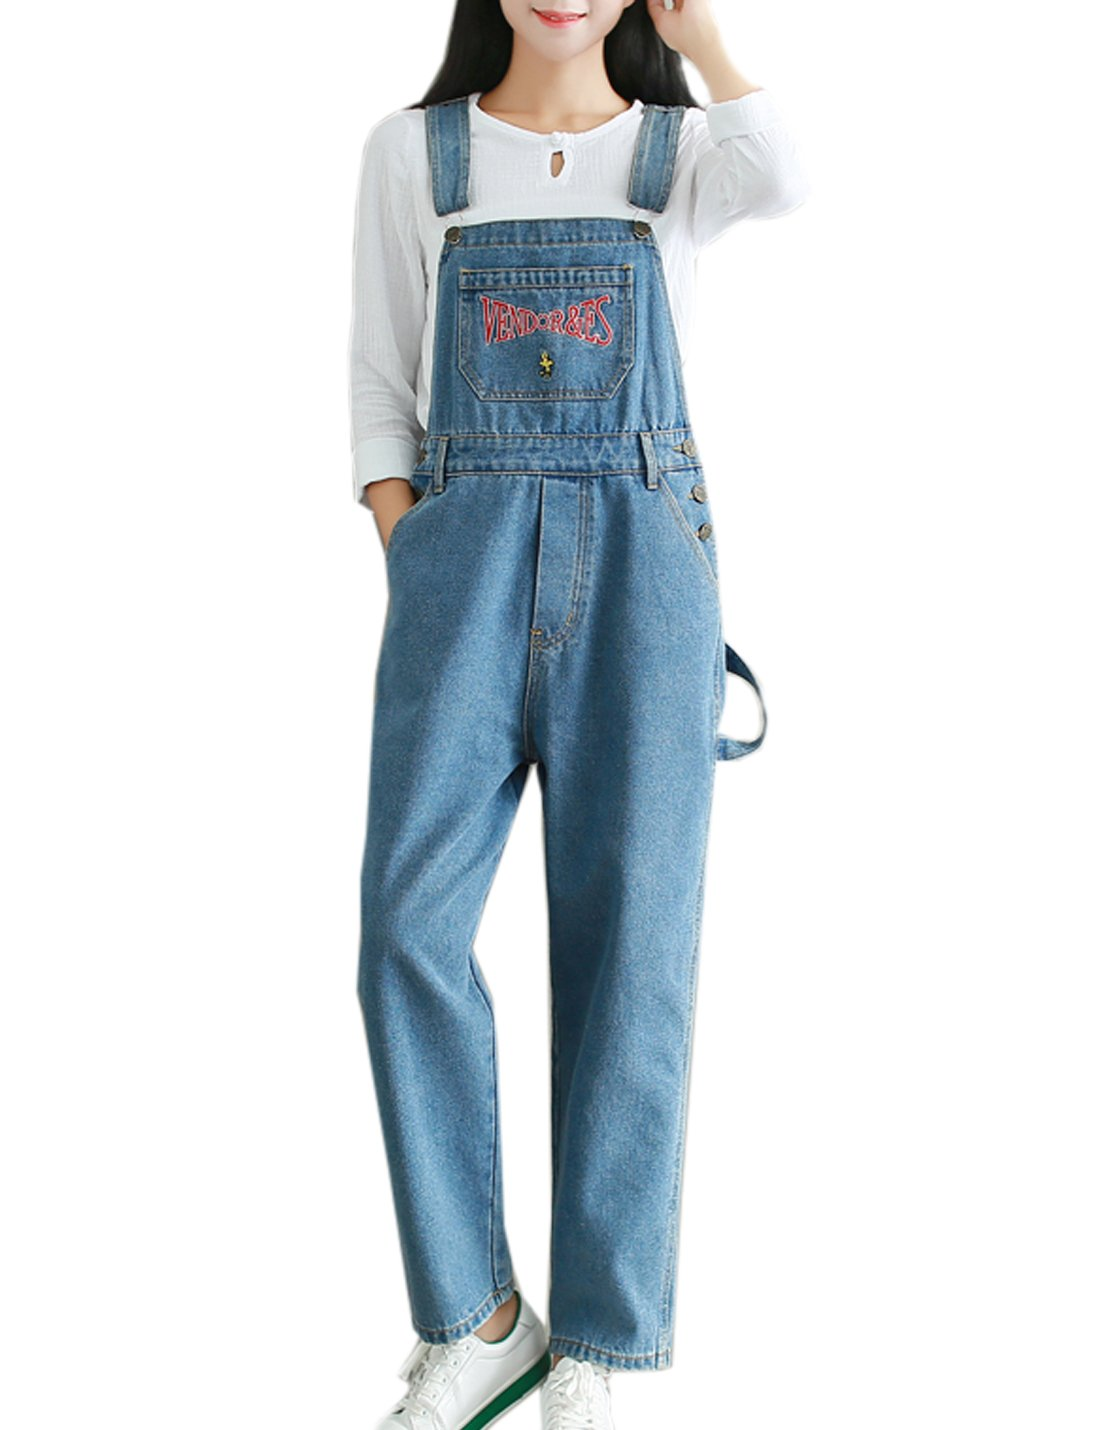 Flygo Women's Casual Vintage Embroidered Denim Bib Overalls Wide Leg Cropped Harem Pants Jumpsuit (Large, Blue)